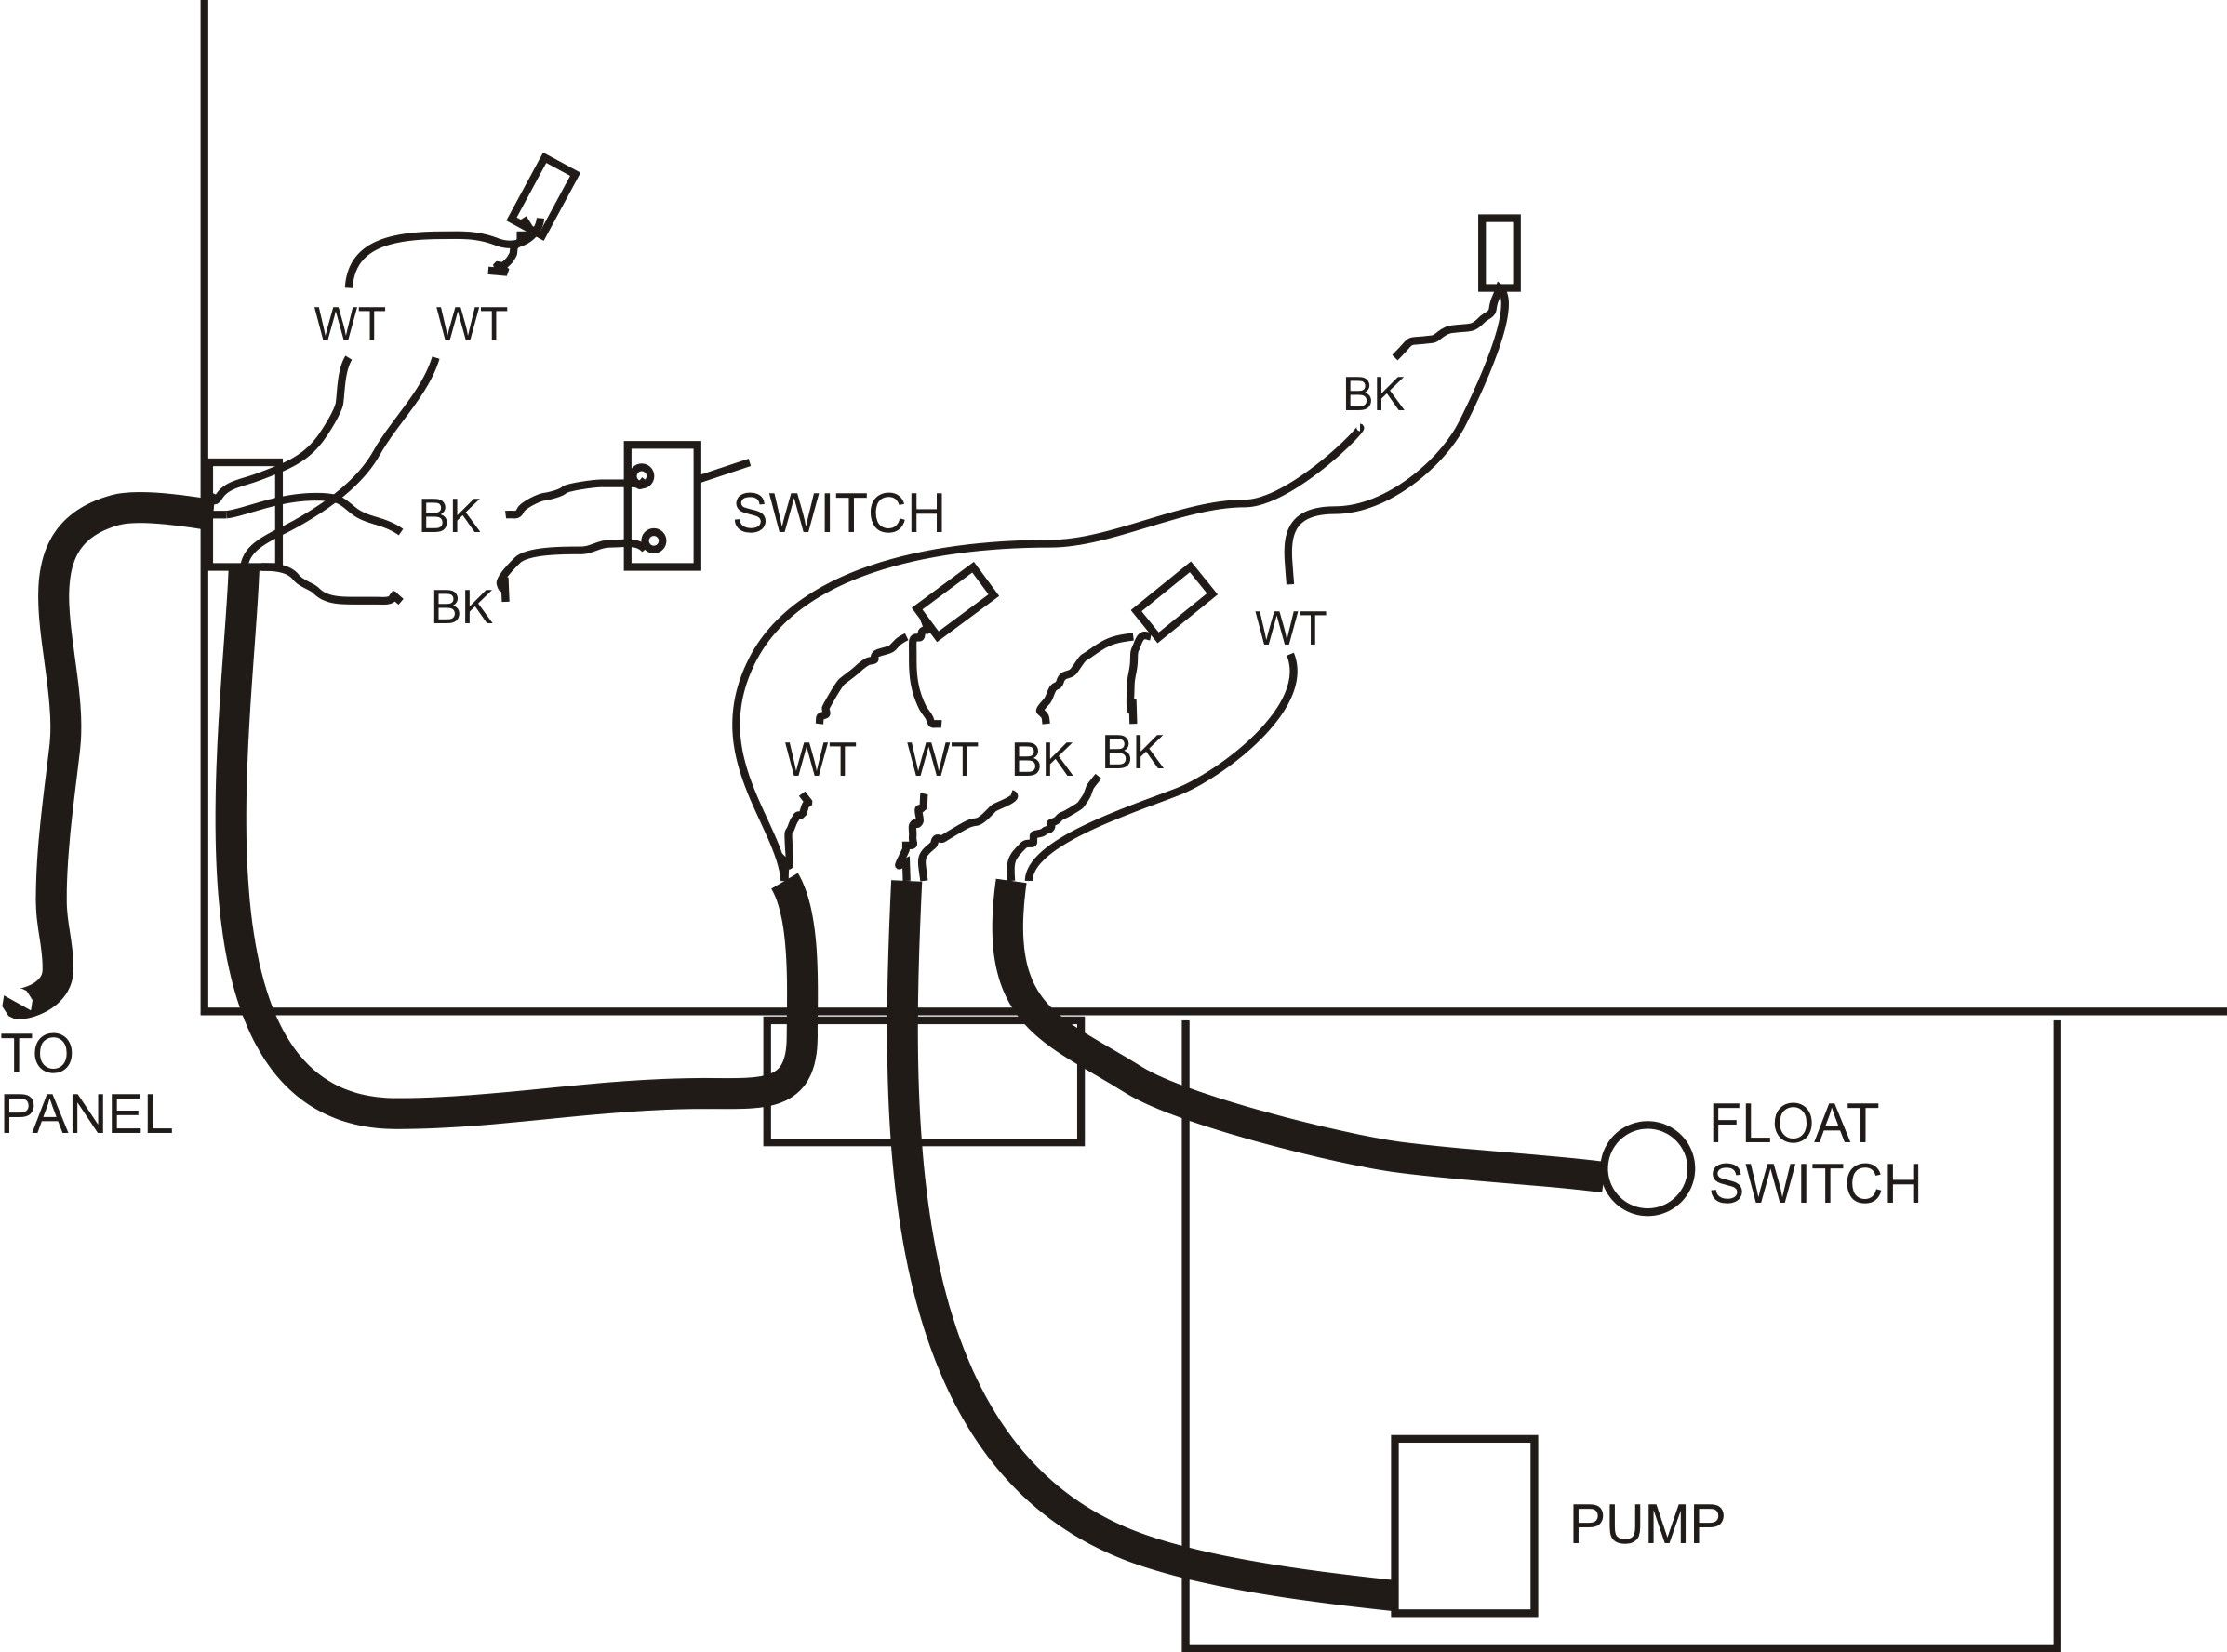 water well pump control box septic wiring diagram submersible wire septic tank pump wiring diagram septic pump wiring [ 2394 x 1776 Pixel ]